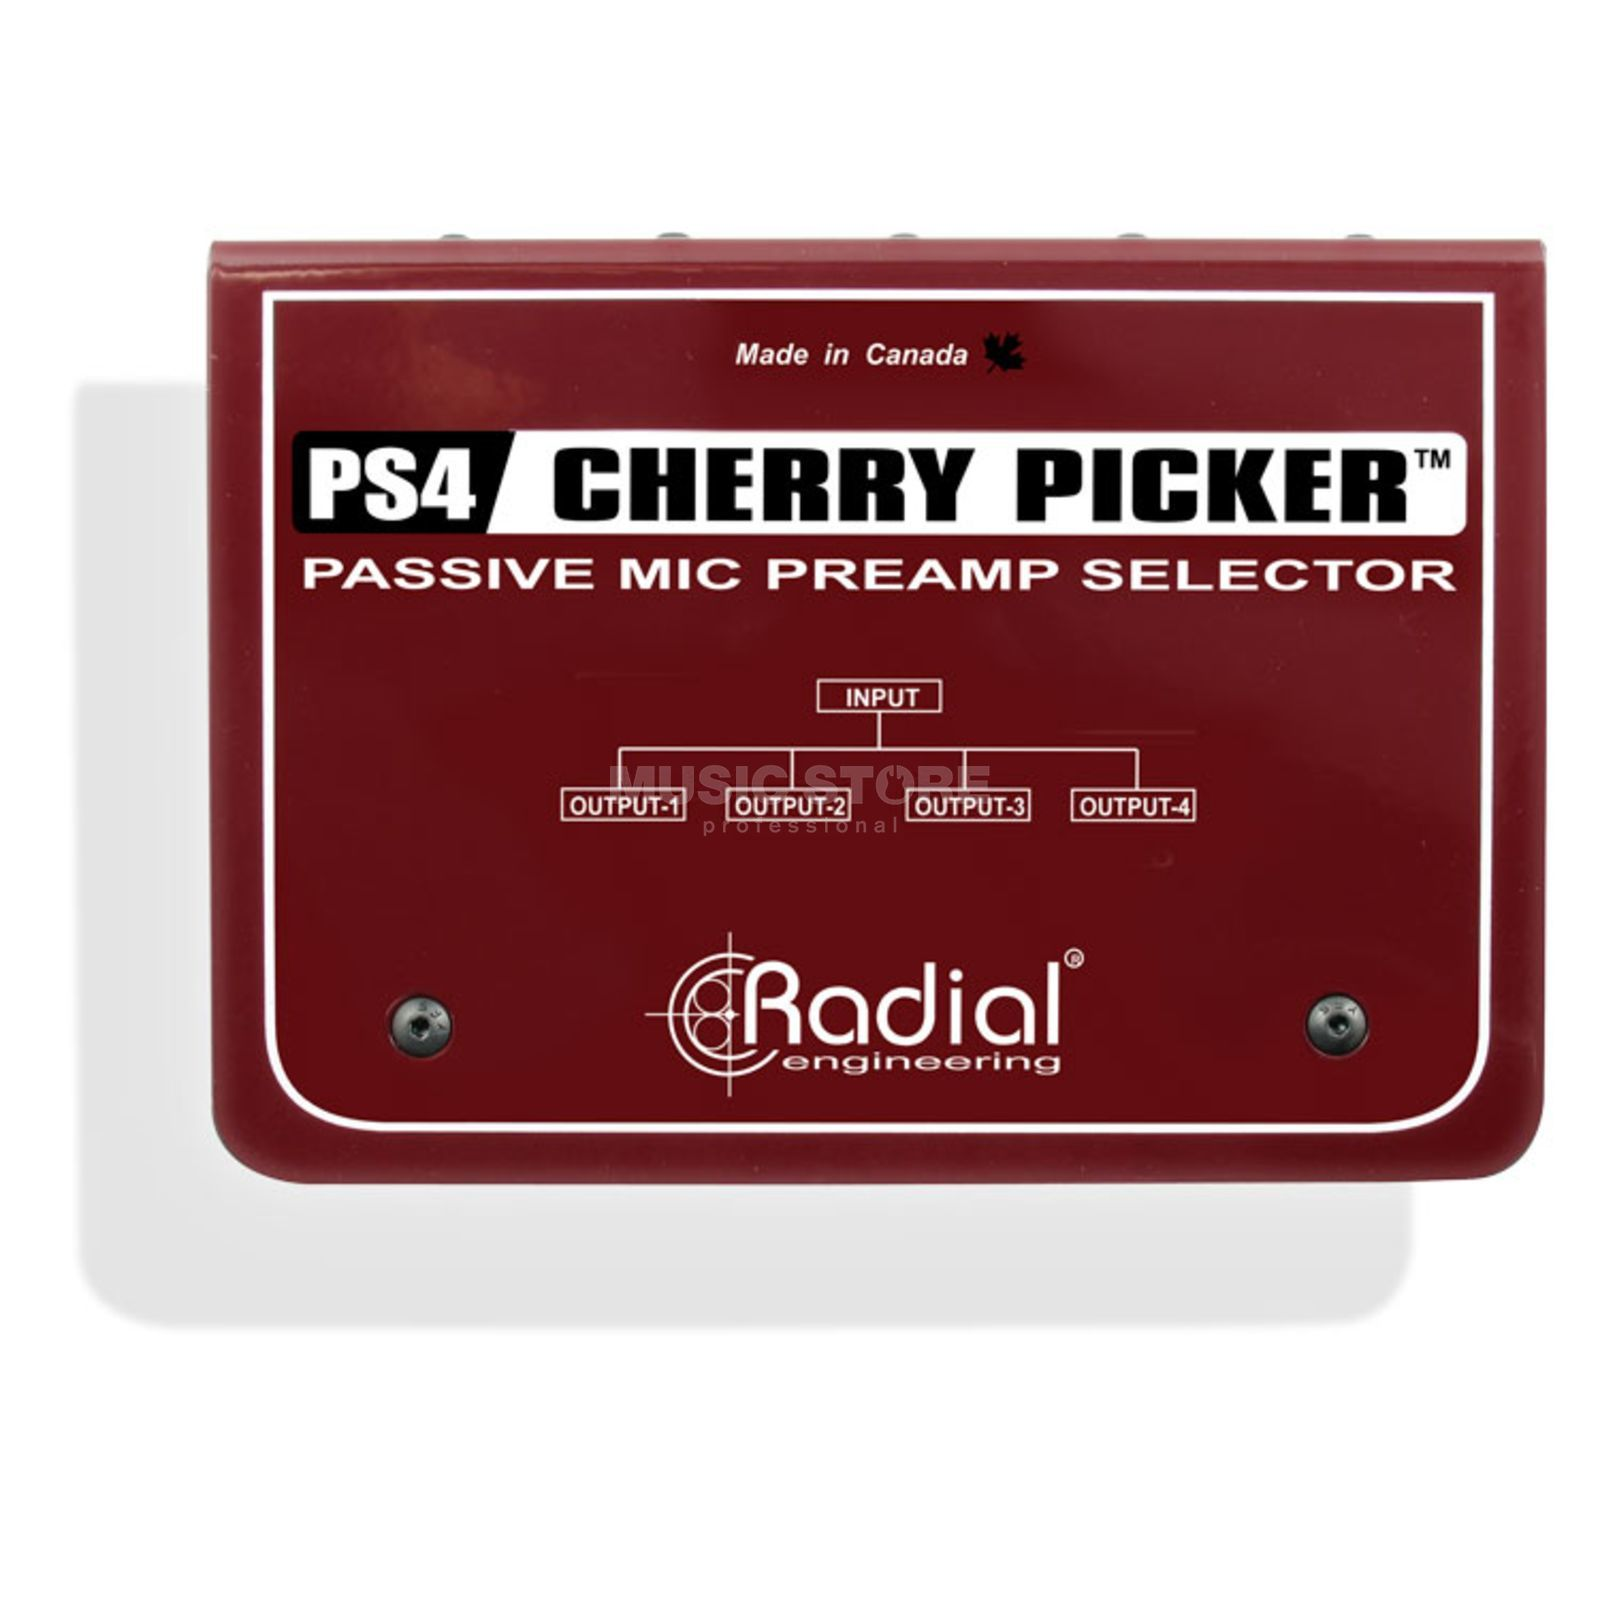 Radial CP3 Cherry Picker passive 4ch. MicPre Selector Produktbillede